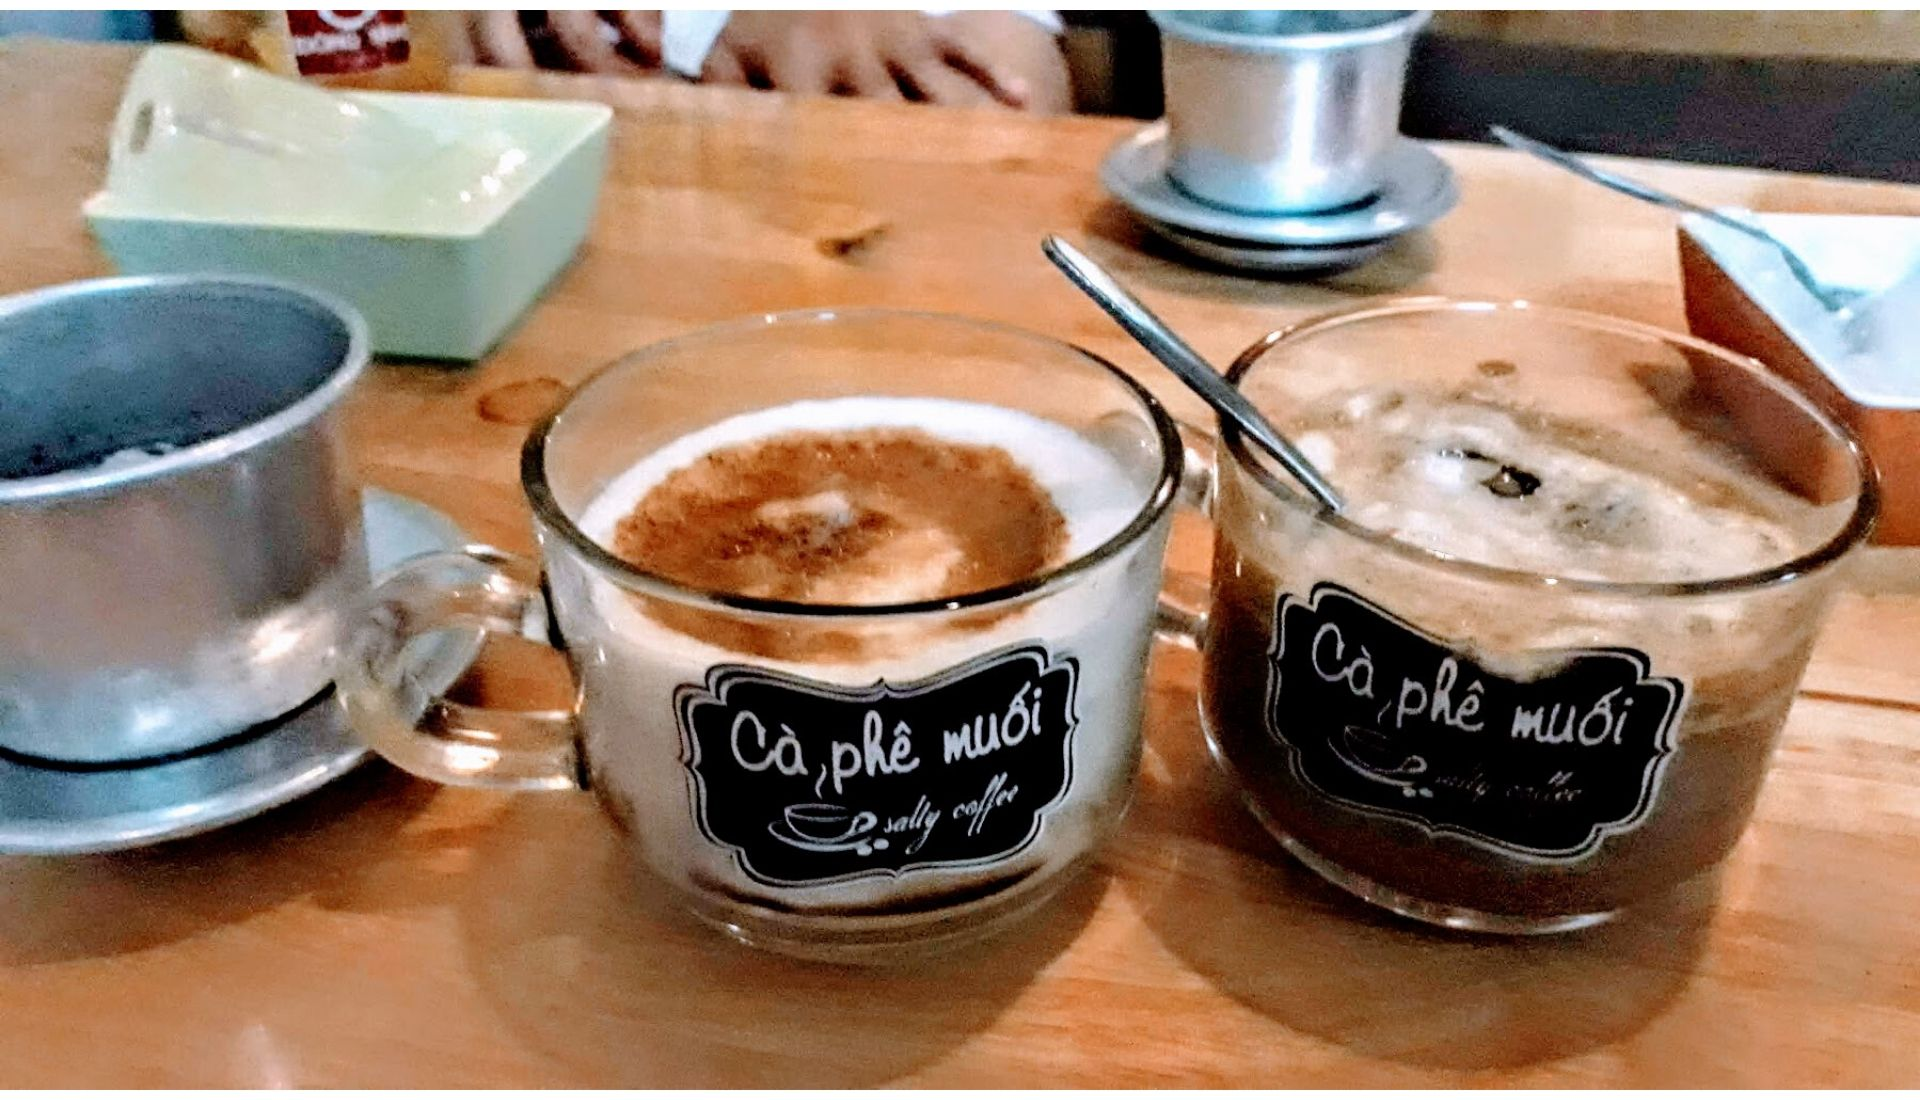 Salted coffee at Ca Phe Muoi